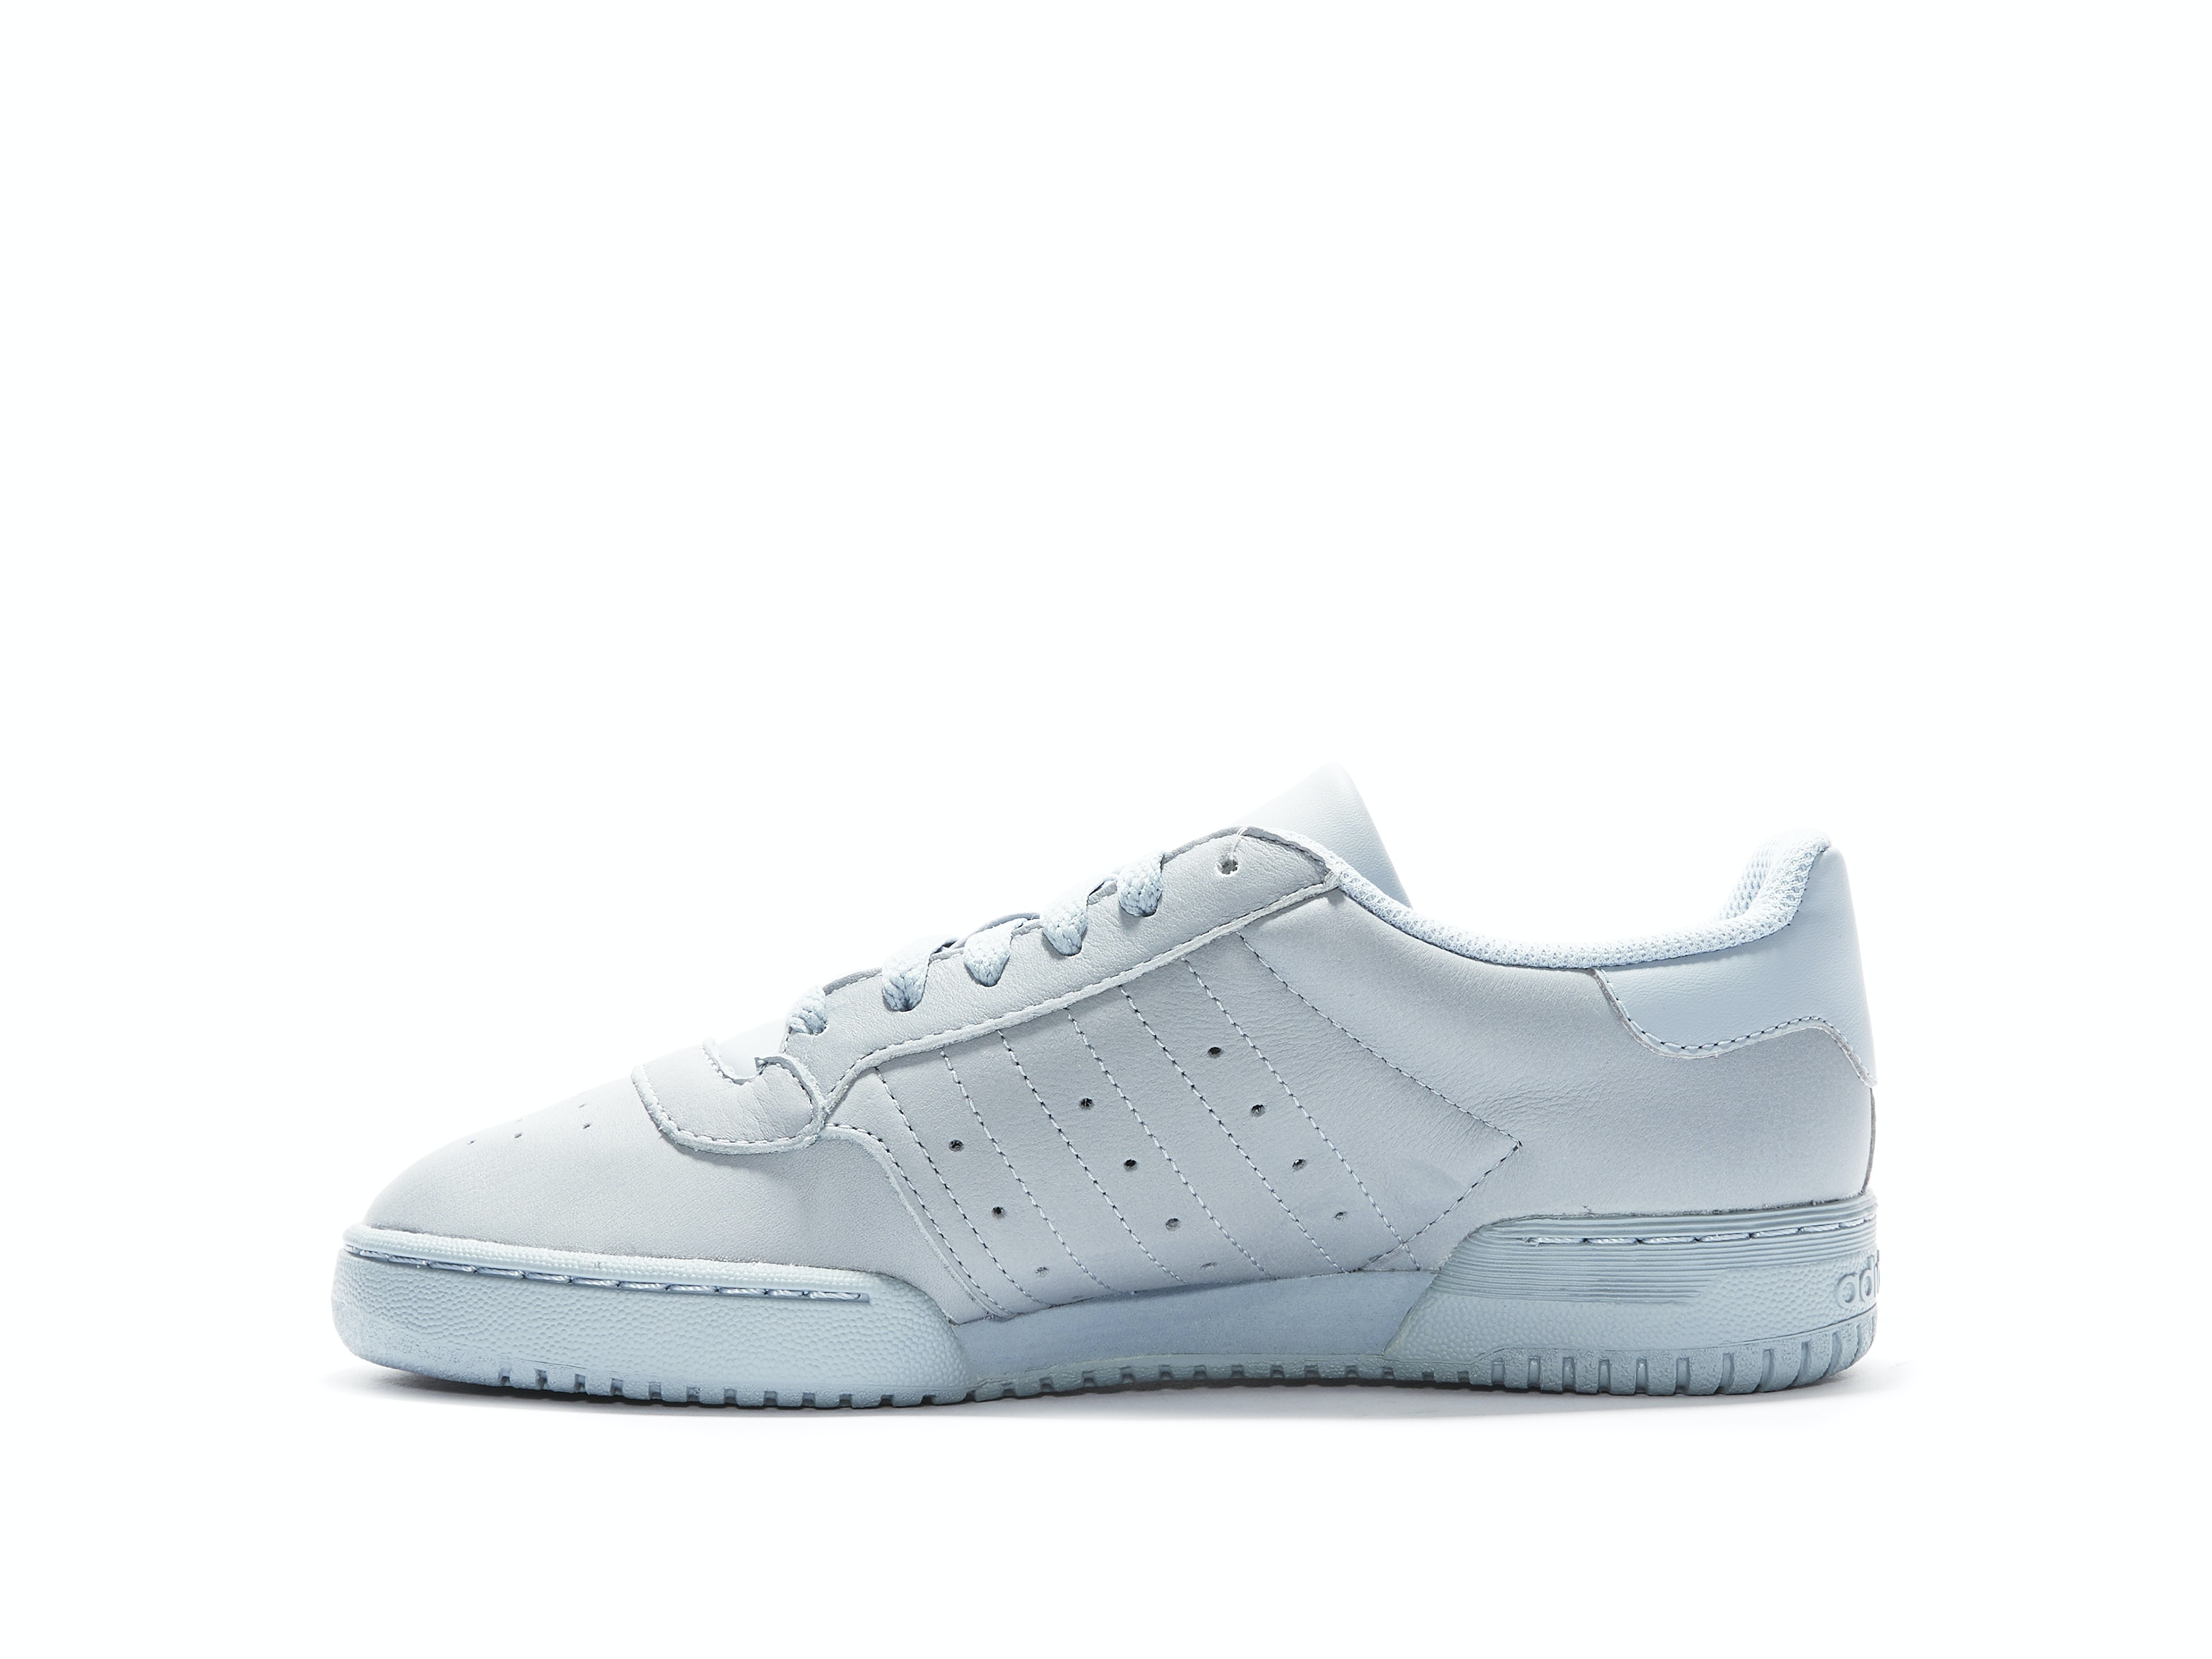 d39e11bcaa600 Shop Yeezy Powerphase Calabasas Grey Online